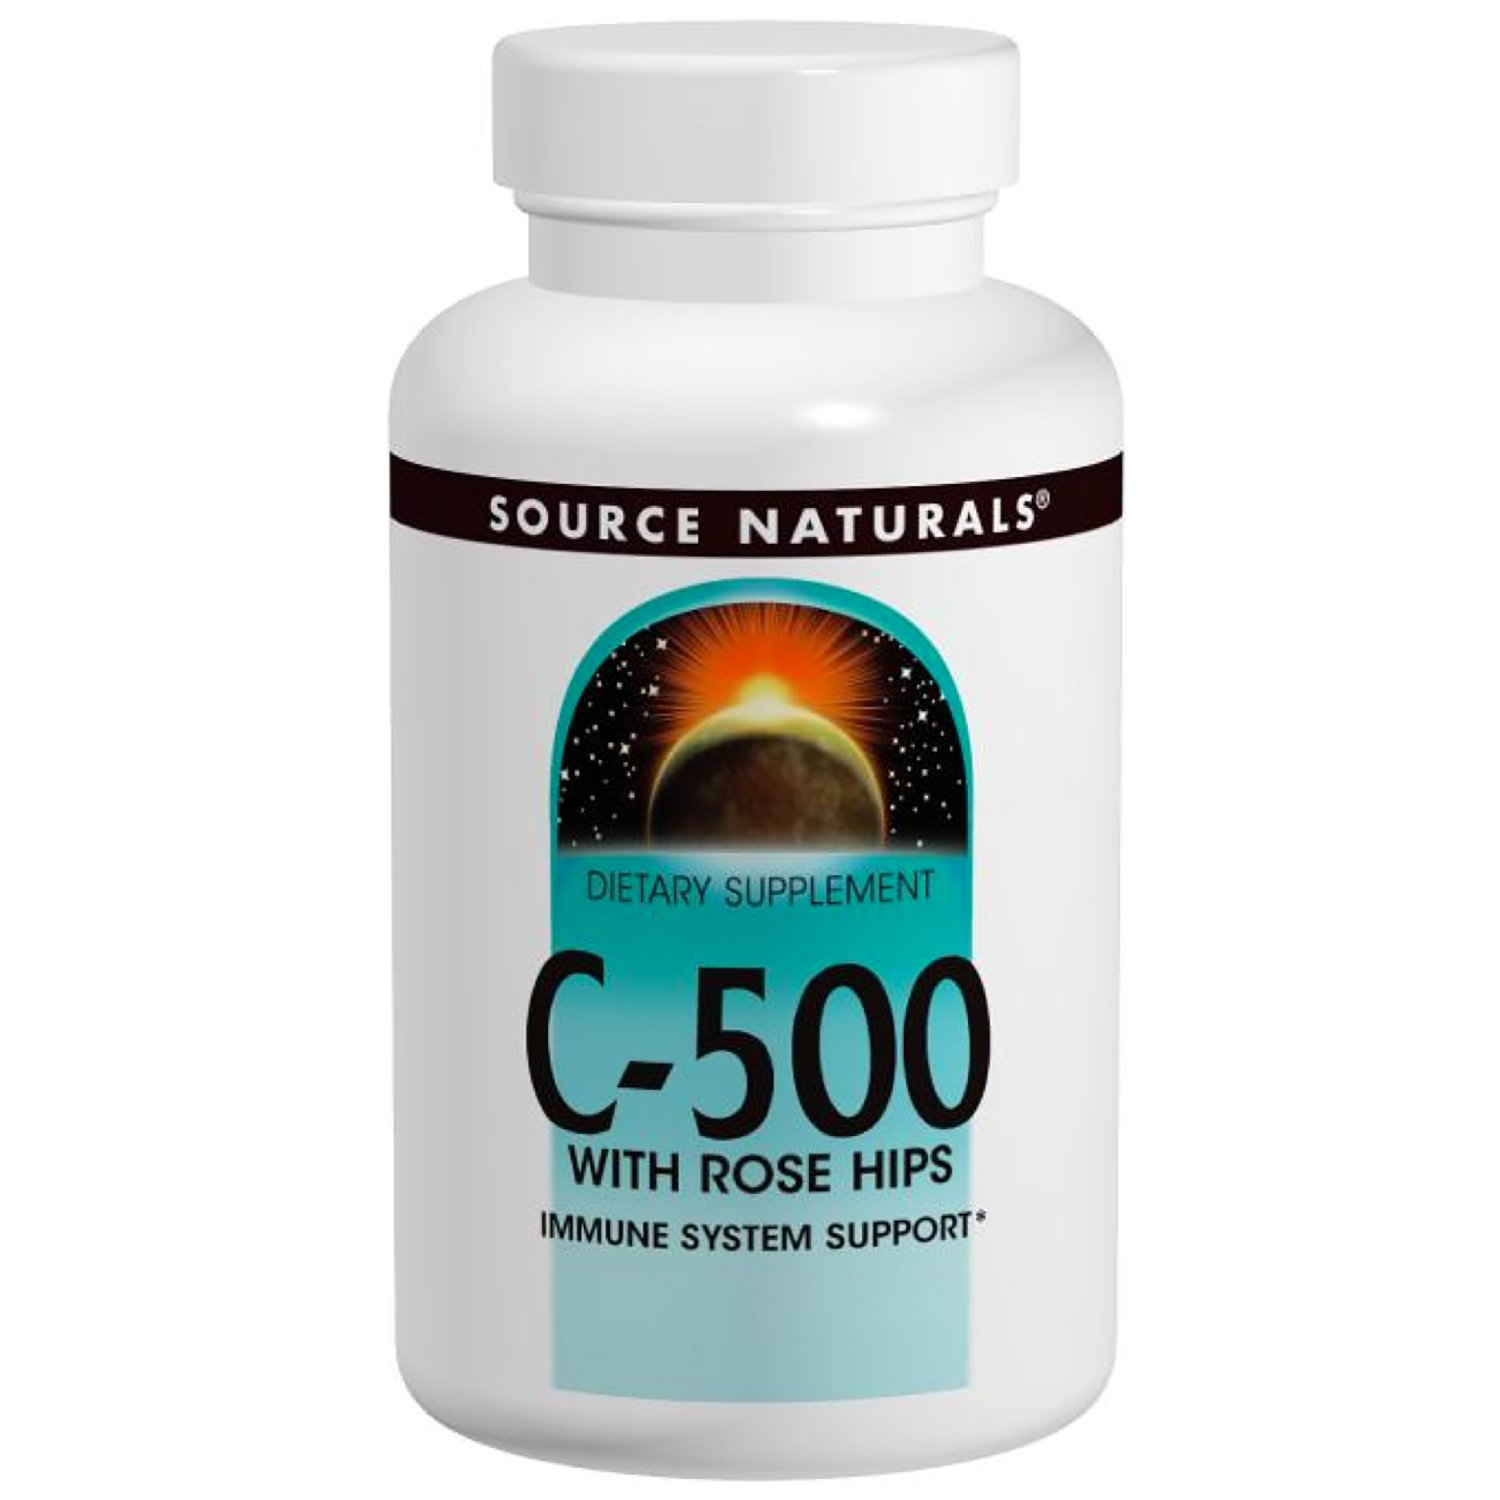 Vitamin C-500 with Rosehips 500mg Source Naturals, Inc. 100 Tabs